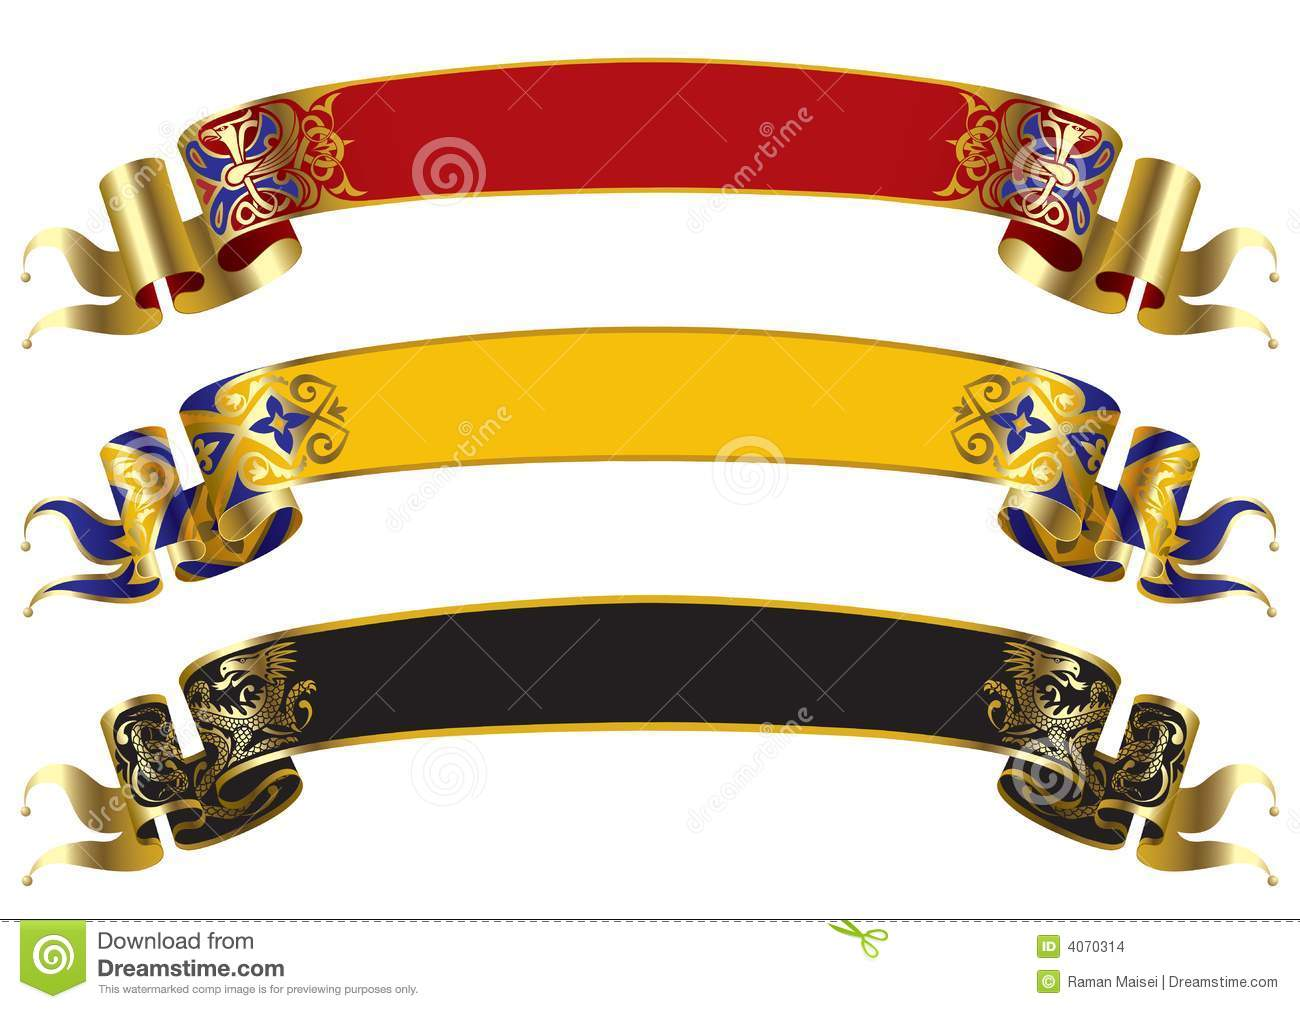 Shield design set royalty free stock photos image 5051988 - Medieval Banners Stock Images Medieval Banners Shield Design Set Stock Images